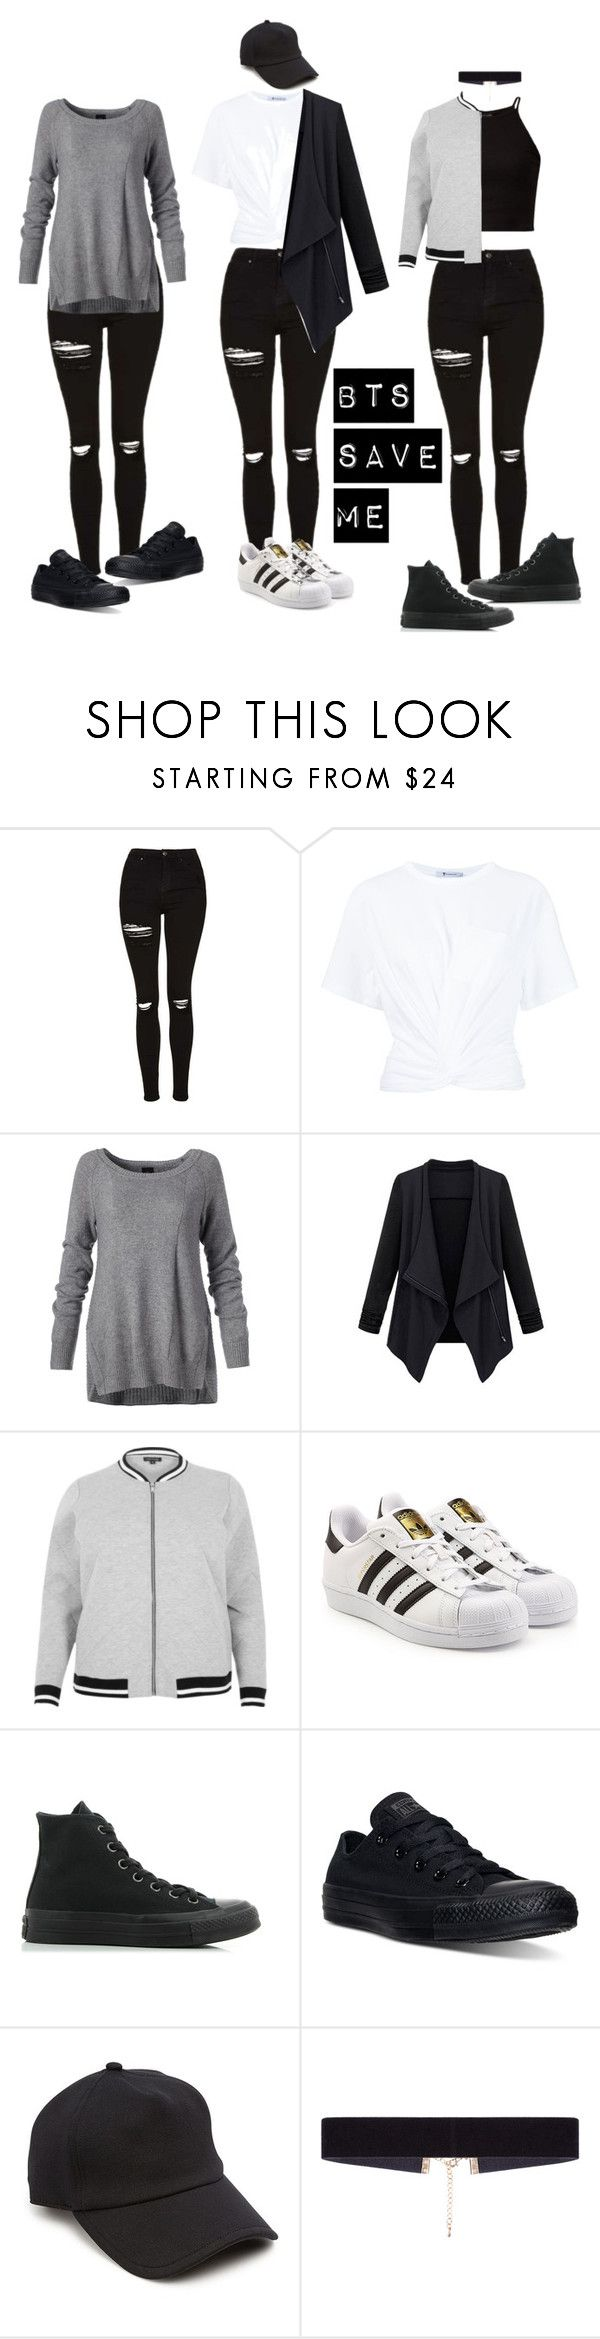 """BTS Save Me Outfit"" by michelycolon on Polyvore featuring moda, Topshop, T By Alexander Wang, River Island, adidas Originals, Converse, rag & bone y 8 Other Reasons"